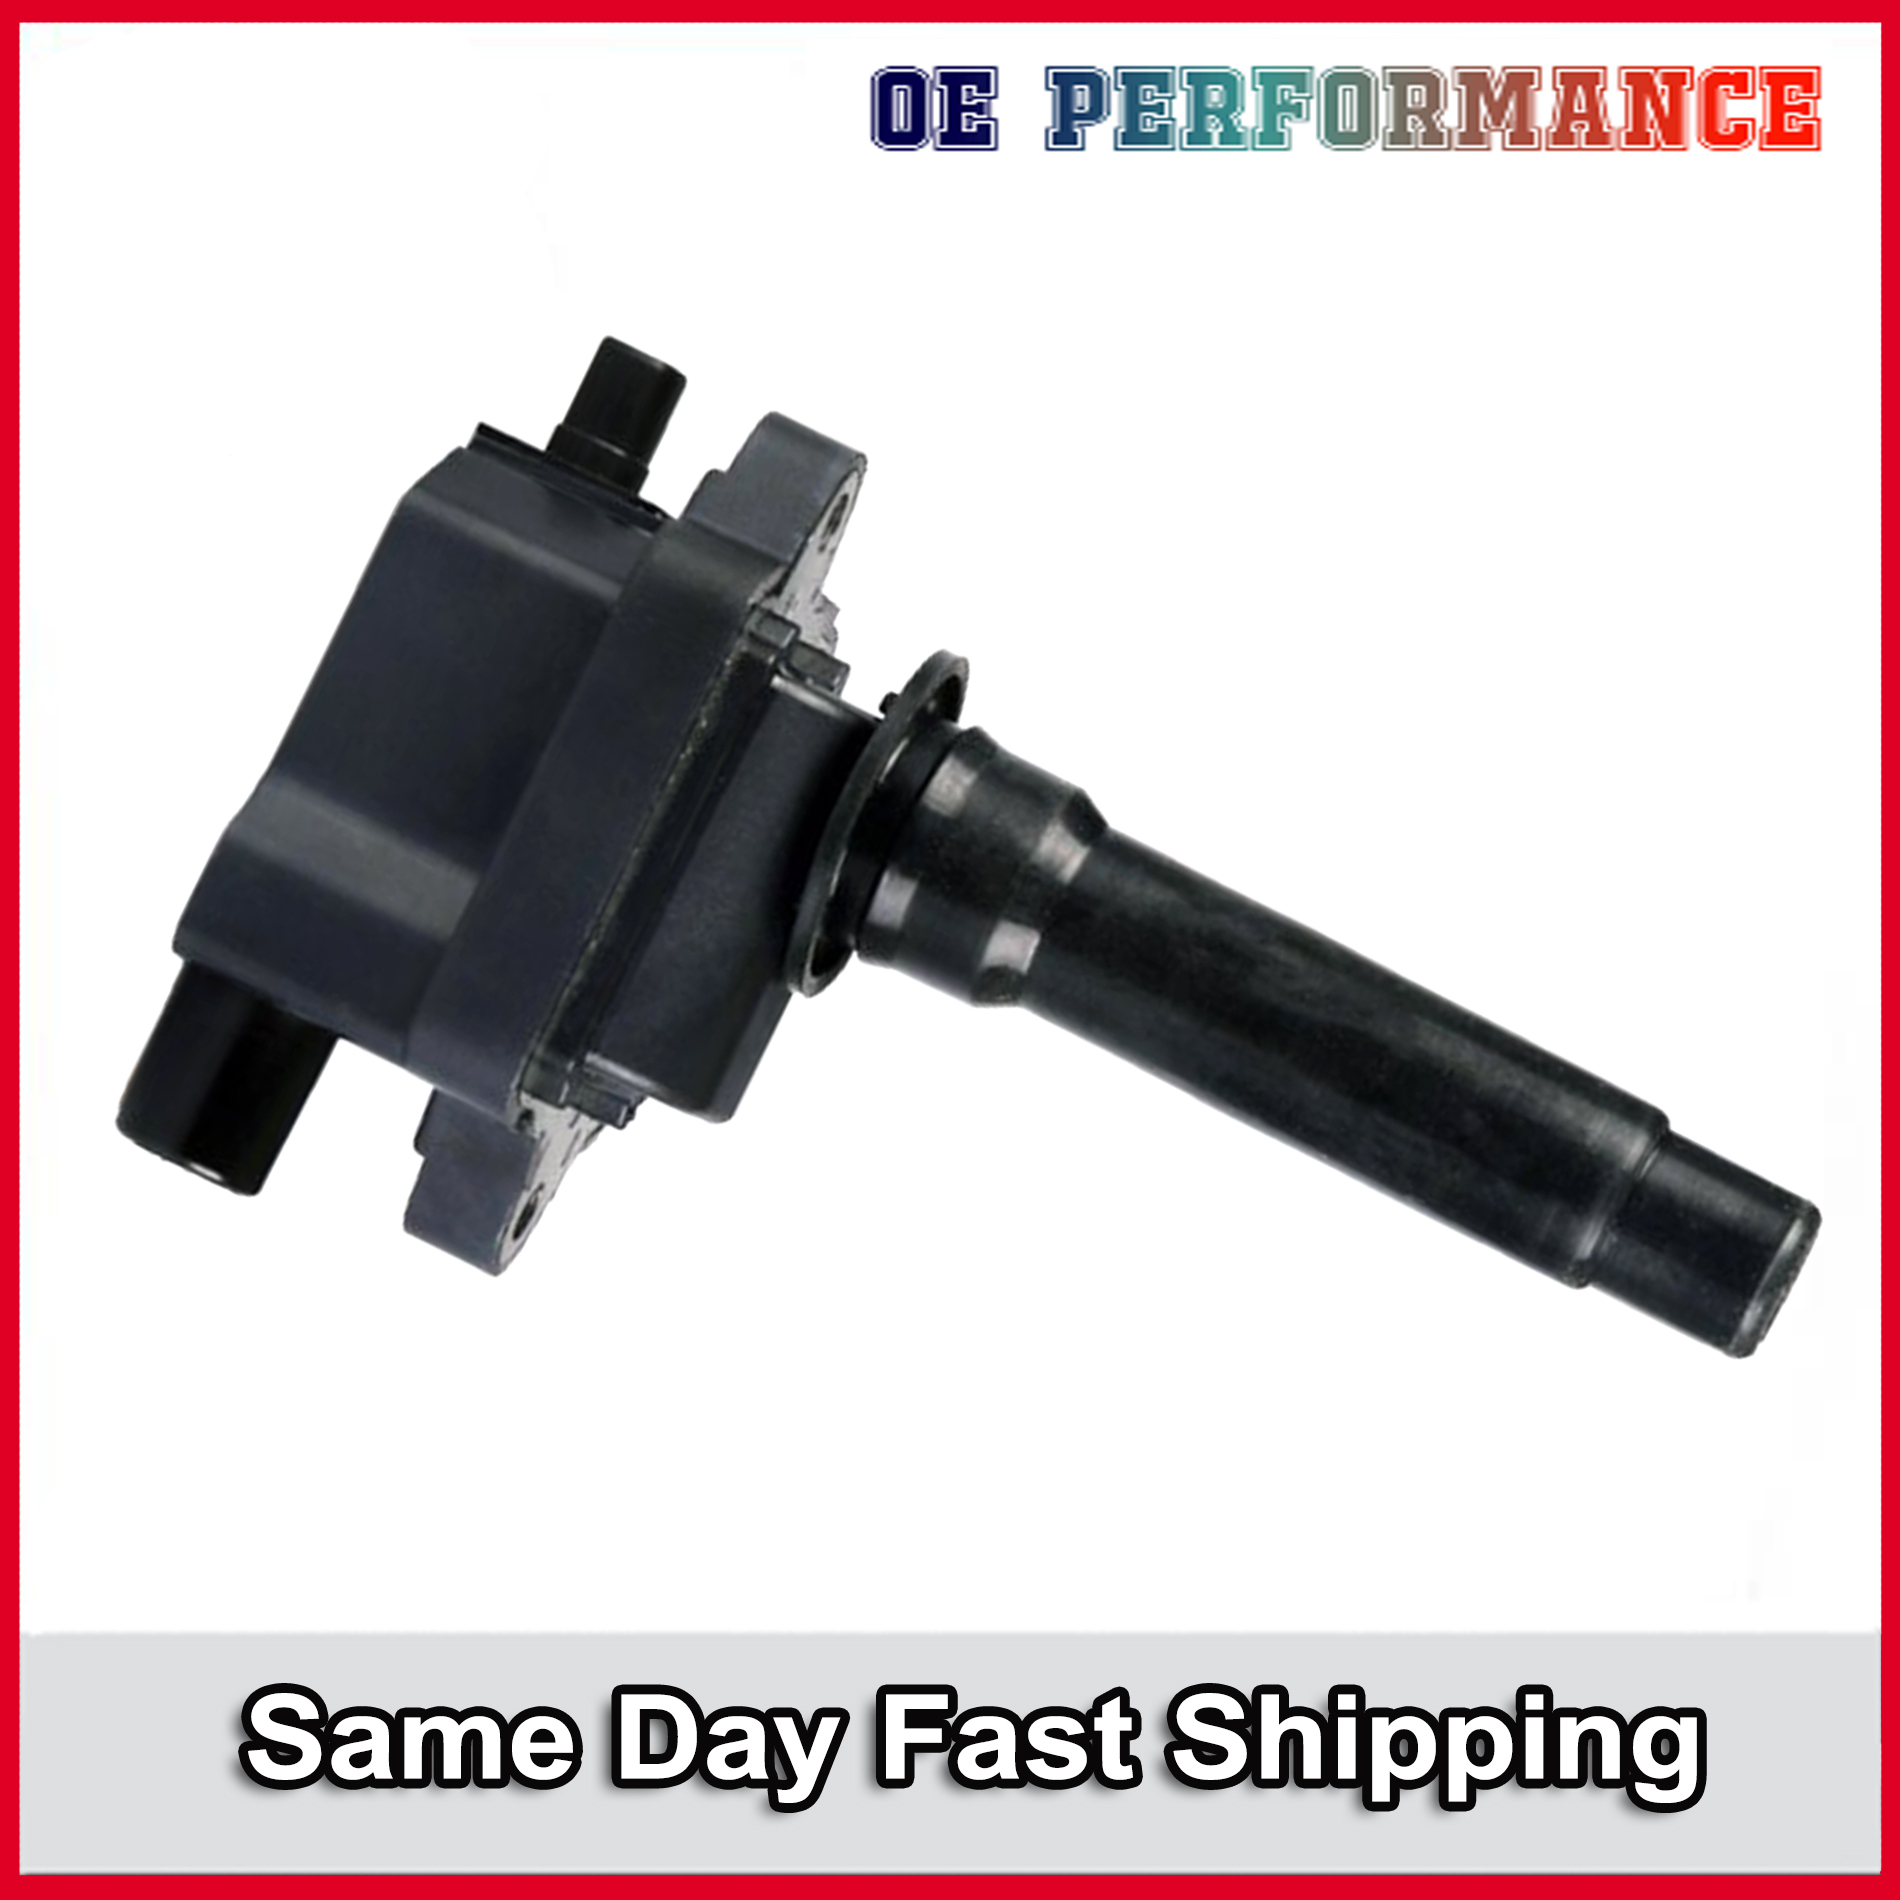 2x Ignition Coils Pack for Kia Sportage 1995-2002 I4 2.0L 0K013-18-100 UF-283